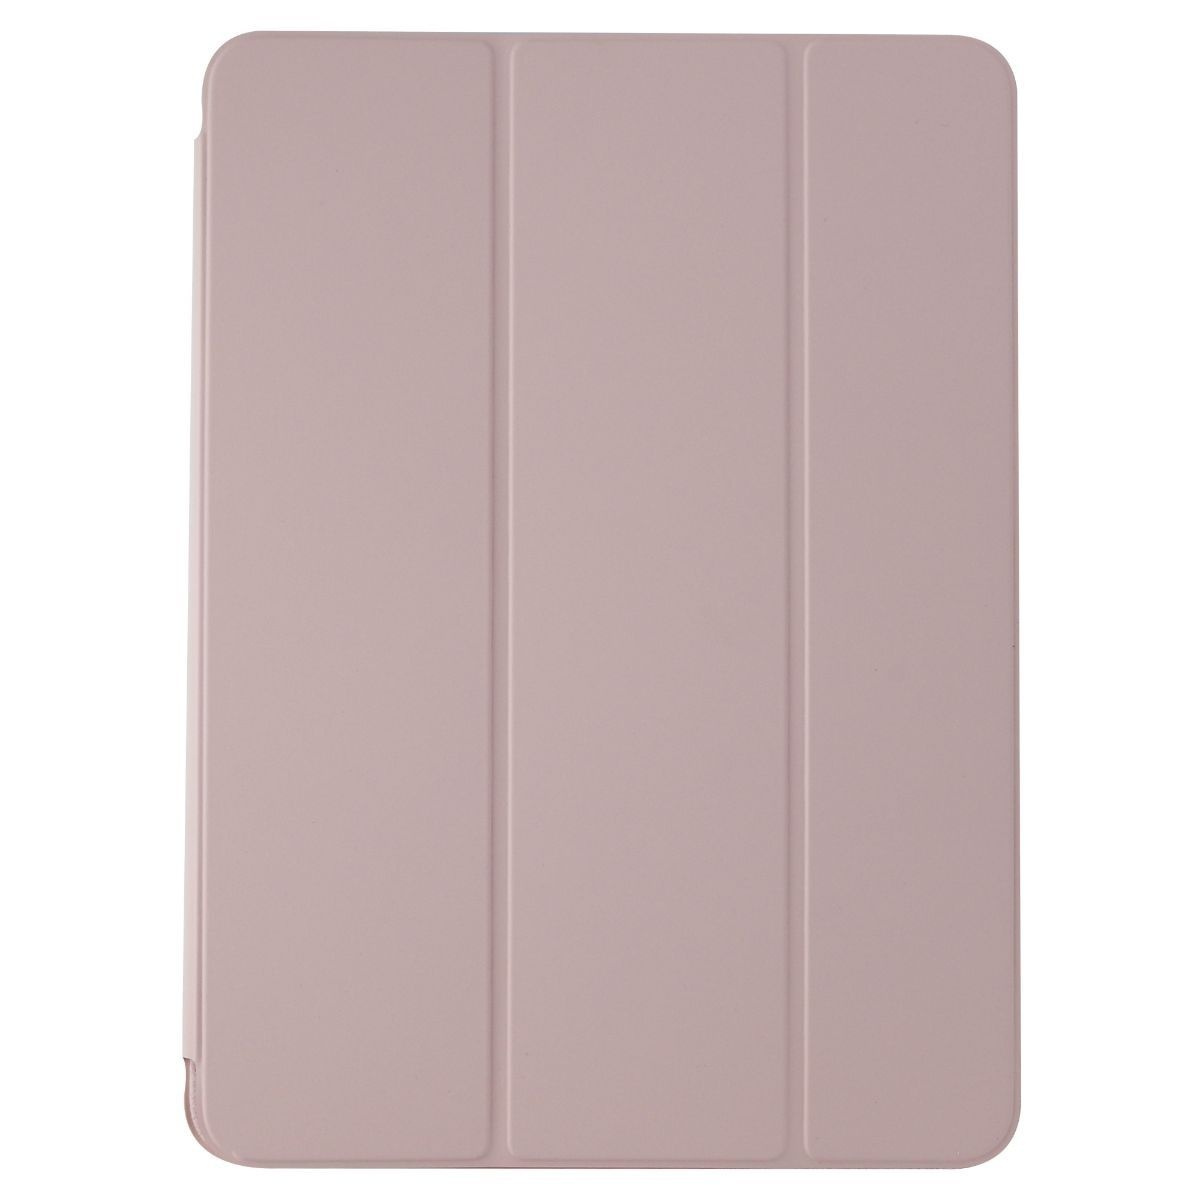 Apple (MRX92ZM/A) Smart Folio Cover for iPad Pro 11 inch - Soft Pink